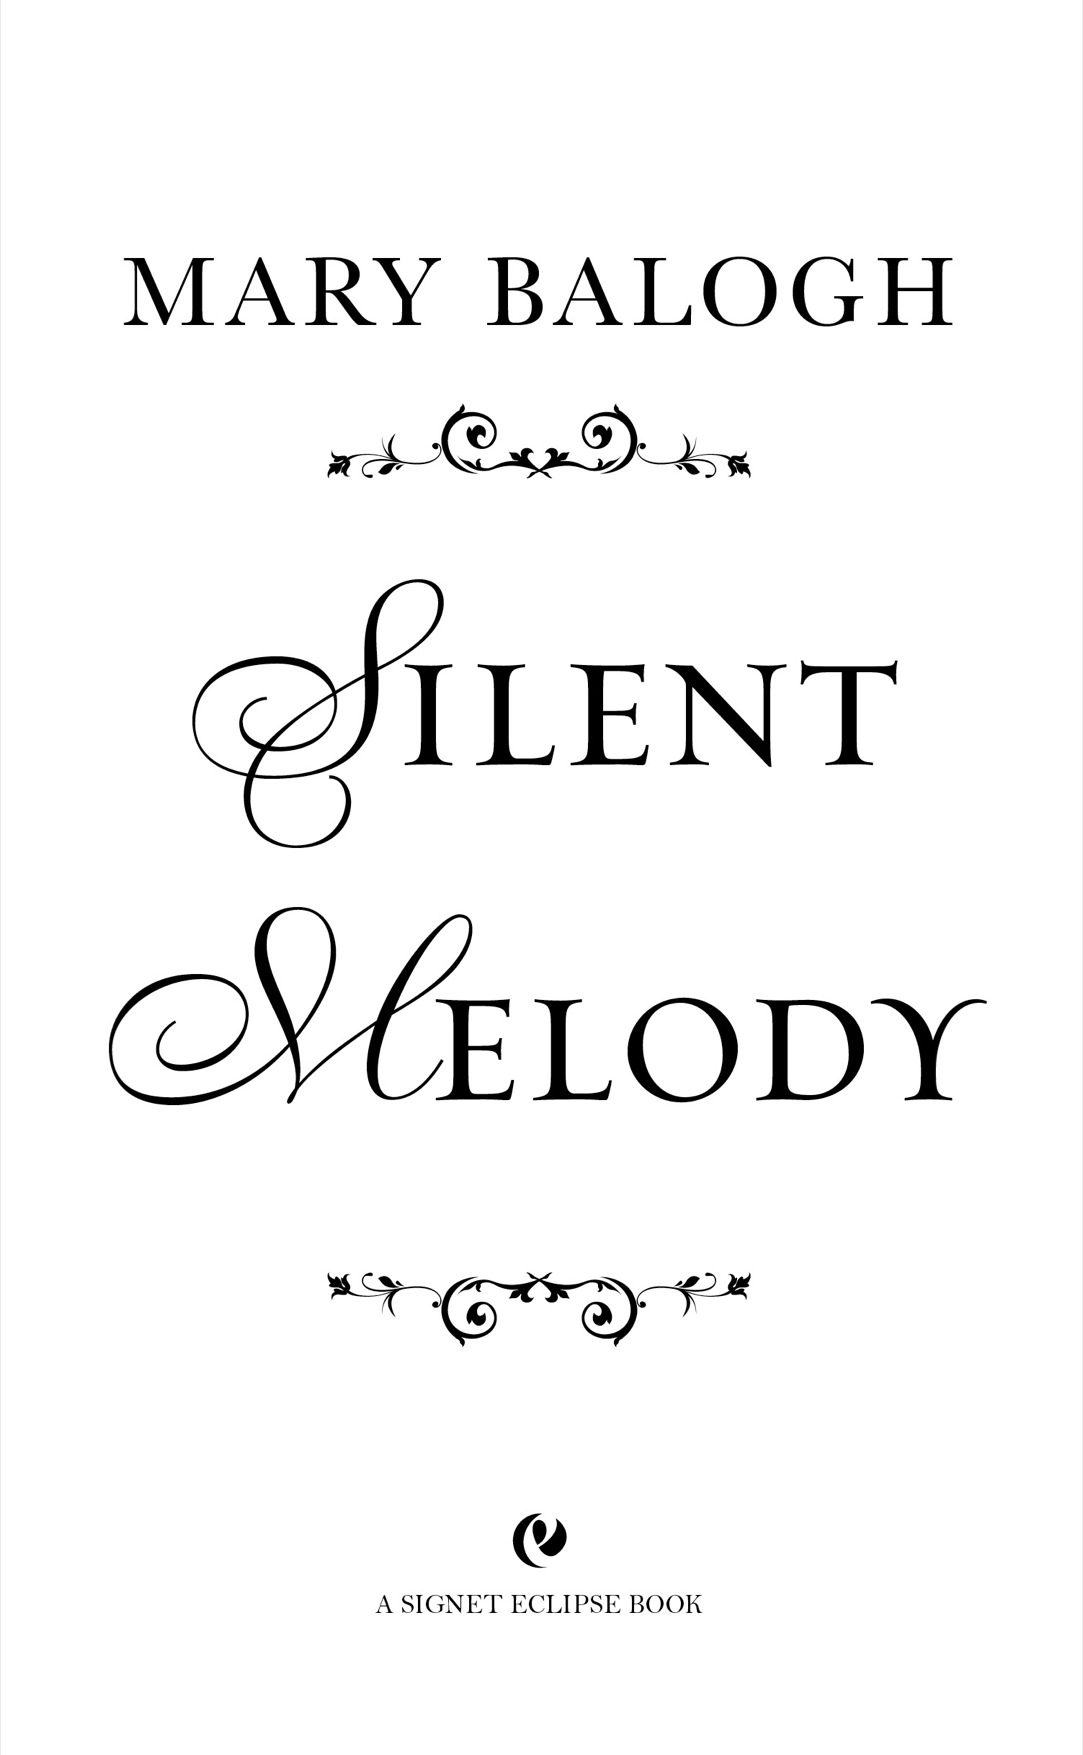 Read Silent Melody by Mary Balogh online free full book.